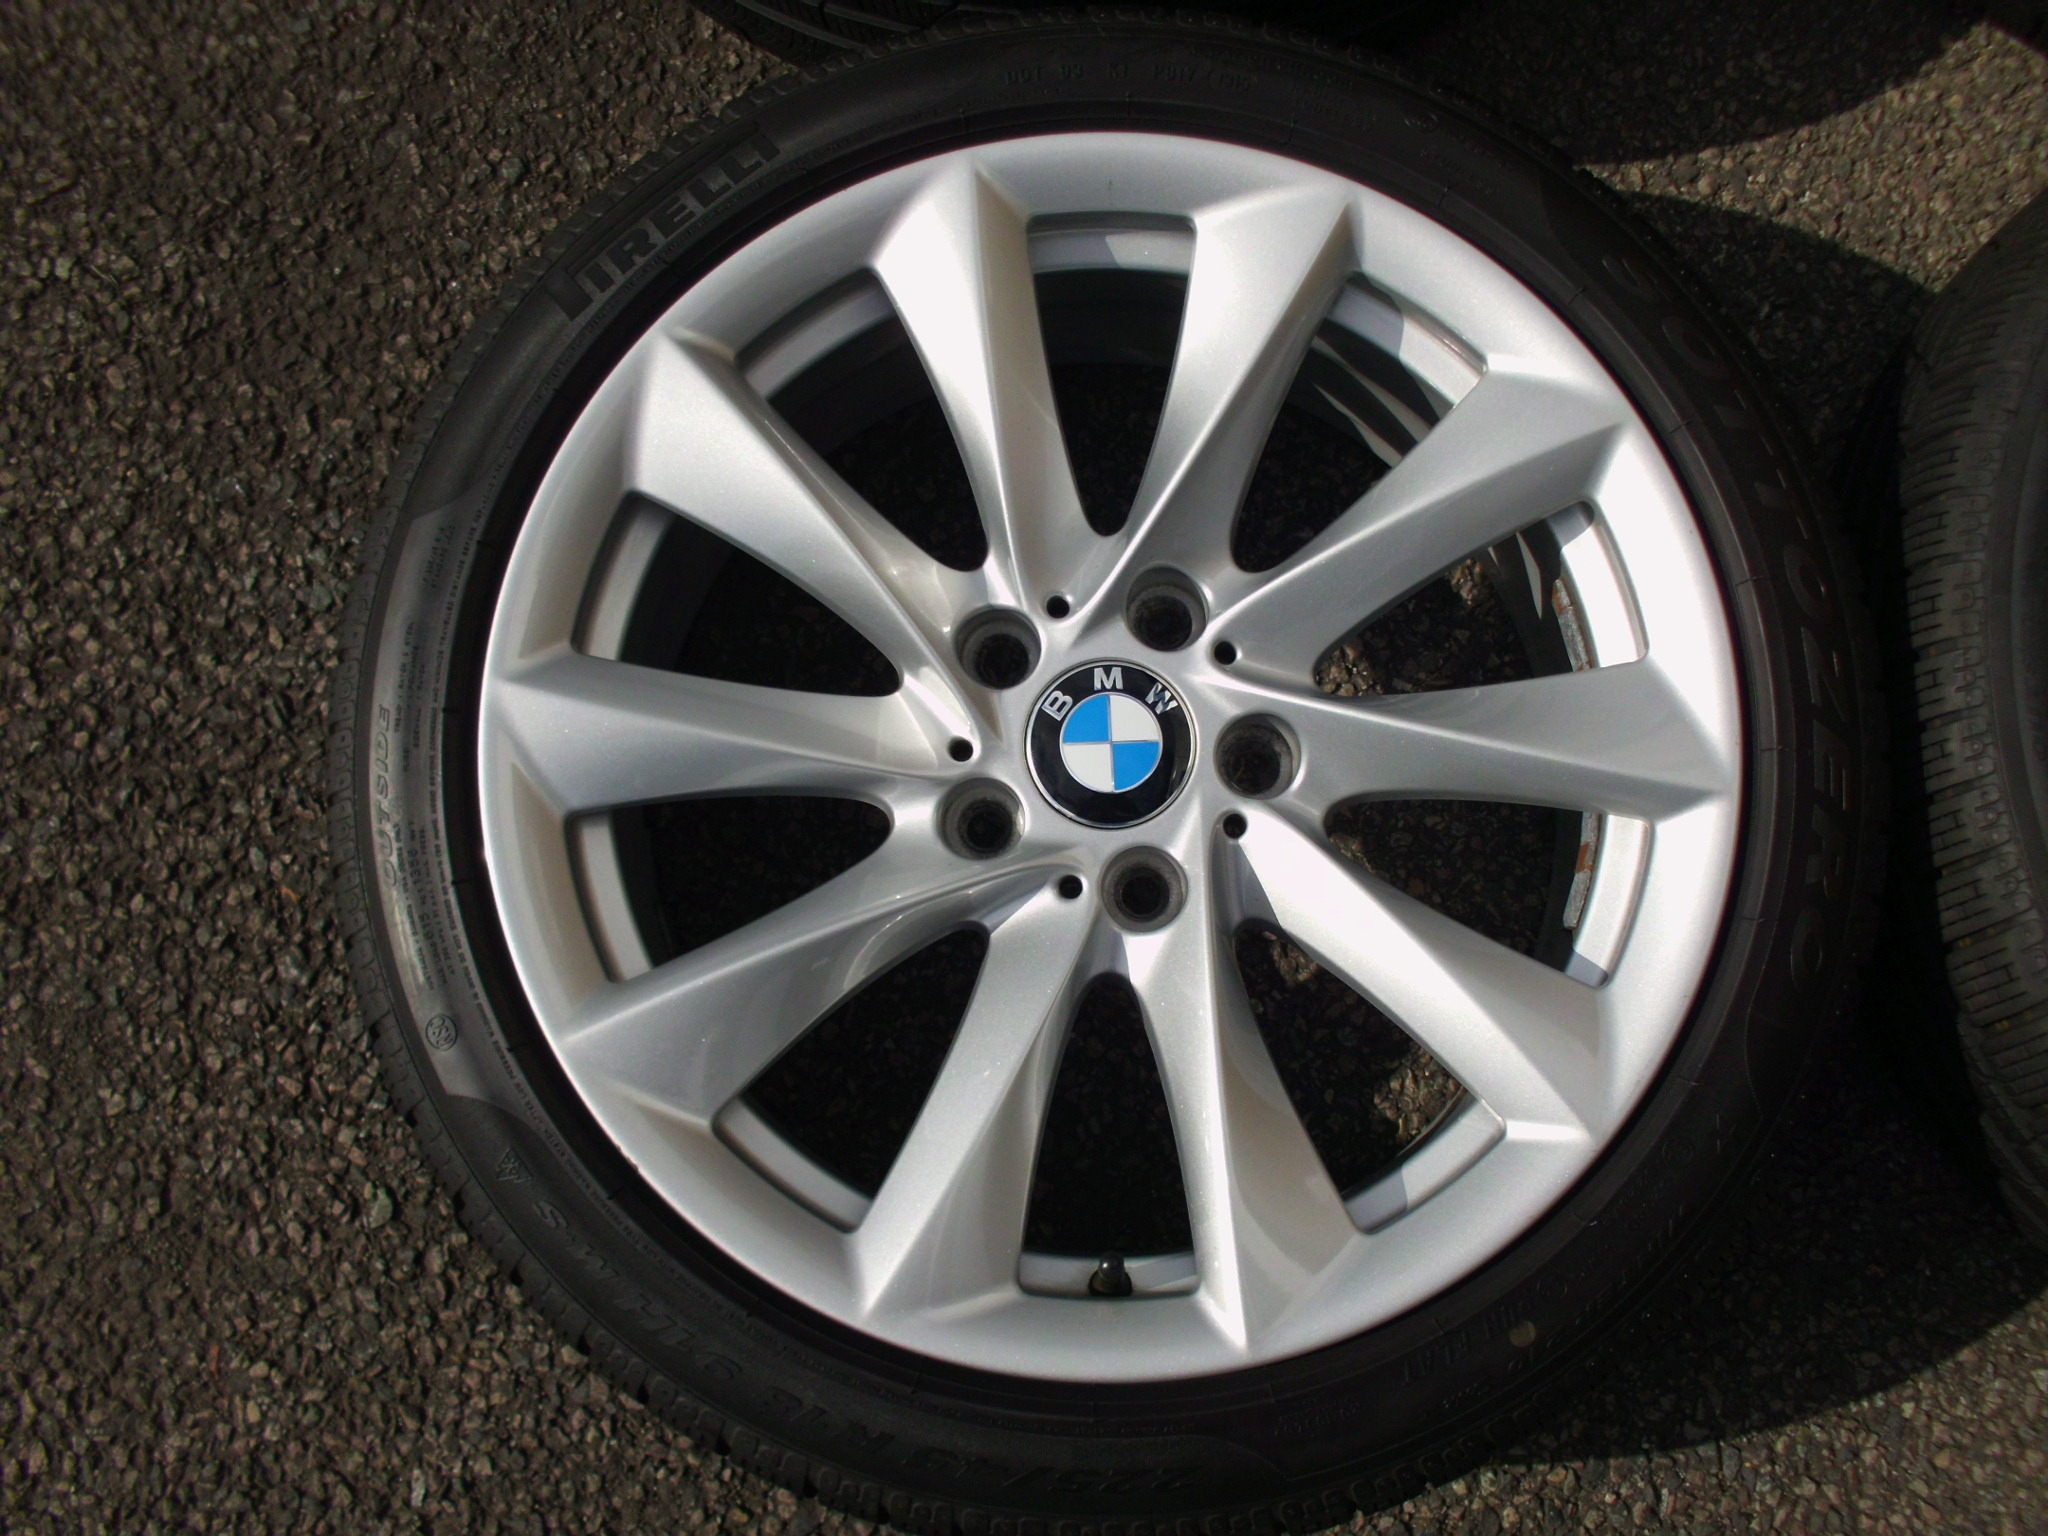 "USED 18"" GENUINE STYLE 415 TURBINE SPOKE ALLOY WHEELS, INC WINTER PIRELLI RUNFLAT TYRES"